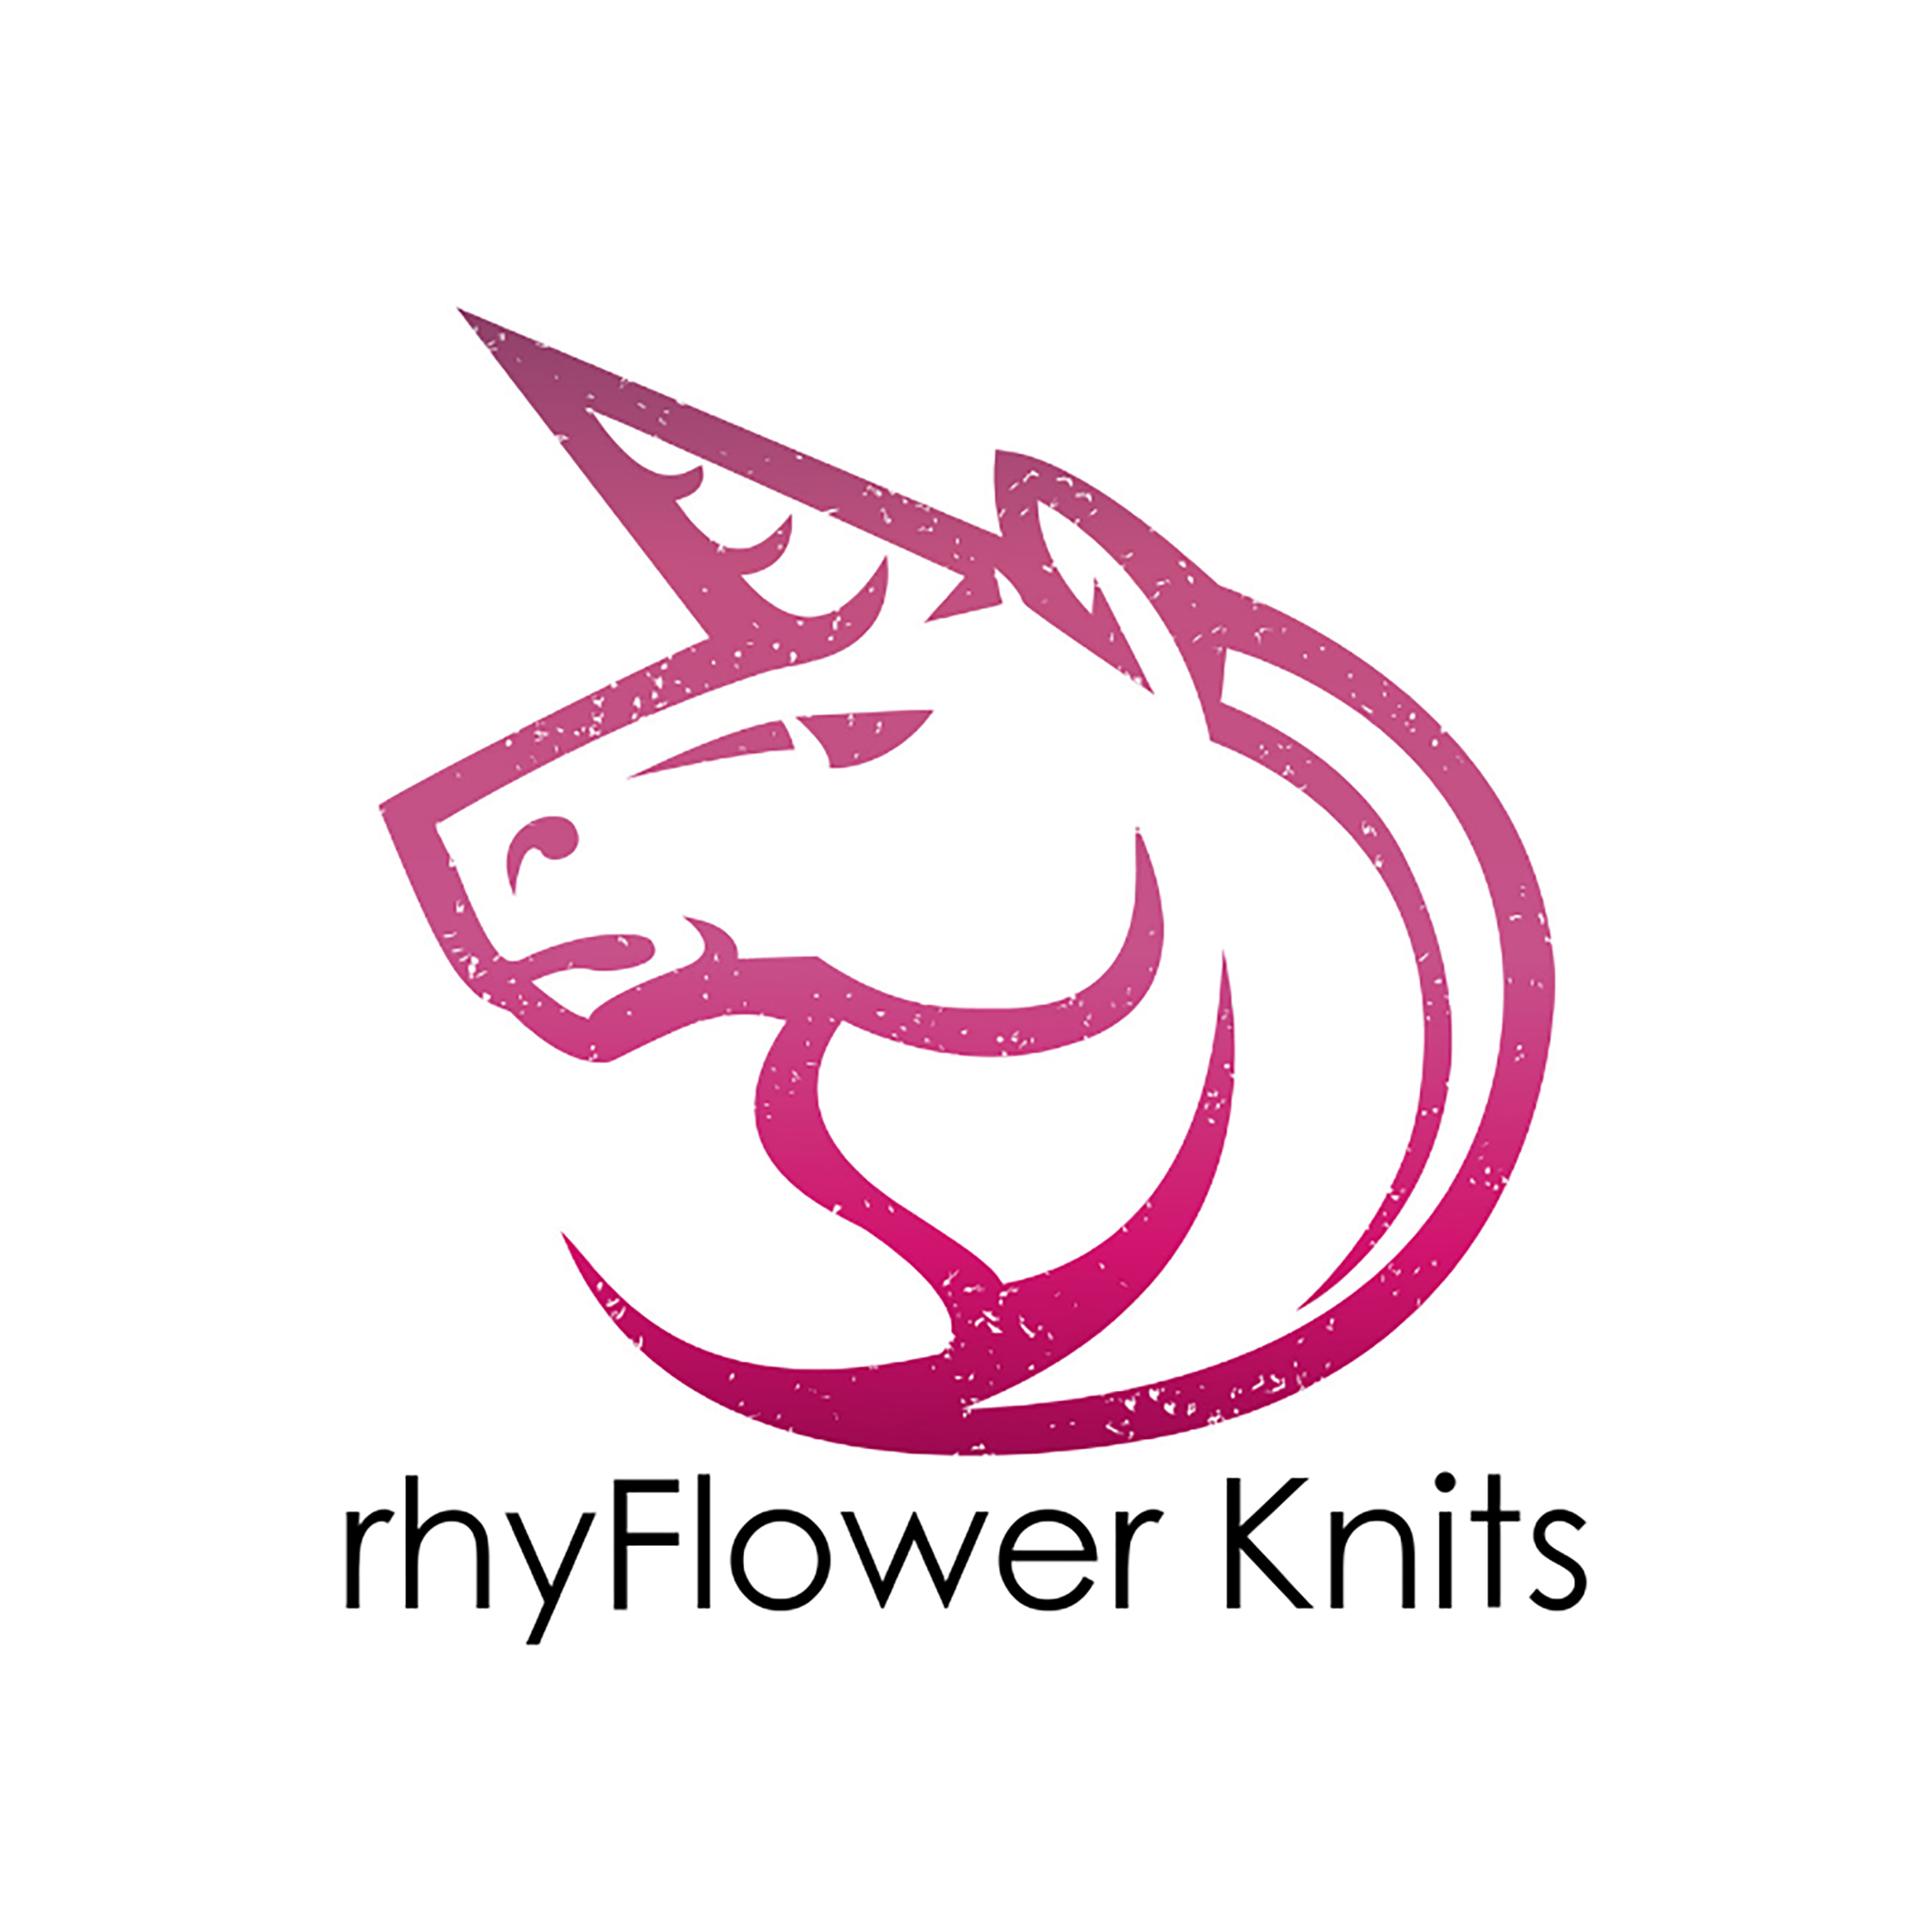 rhyFlower Knits's profile picture